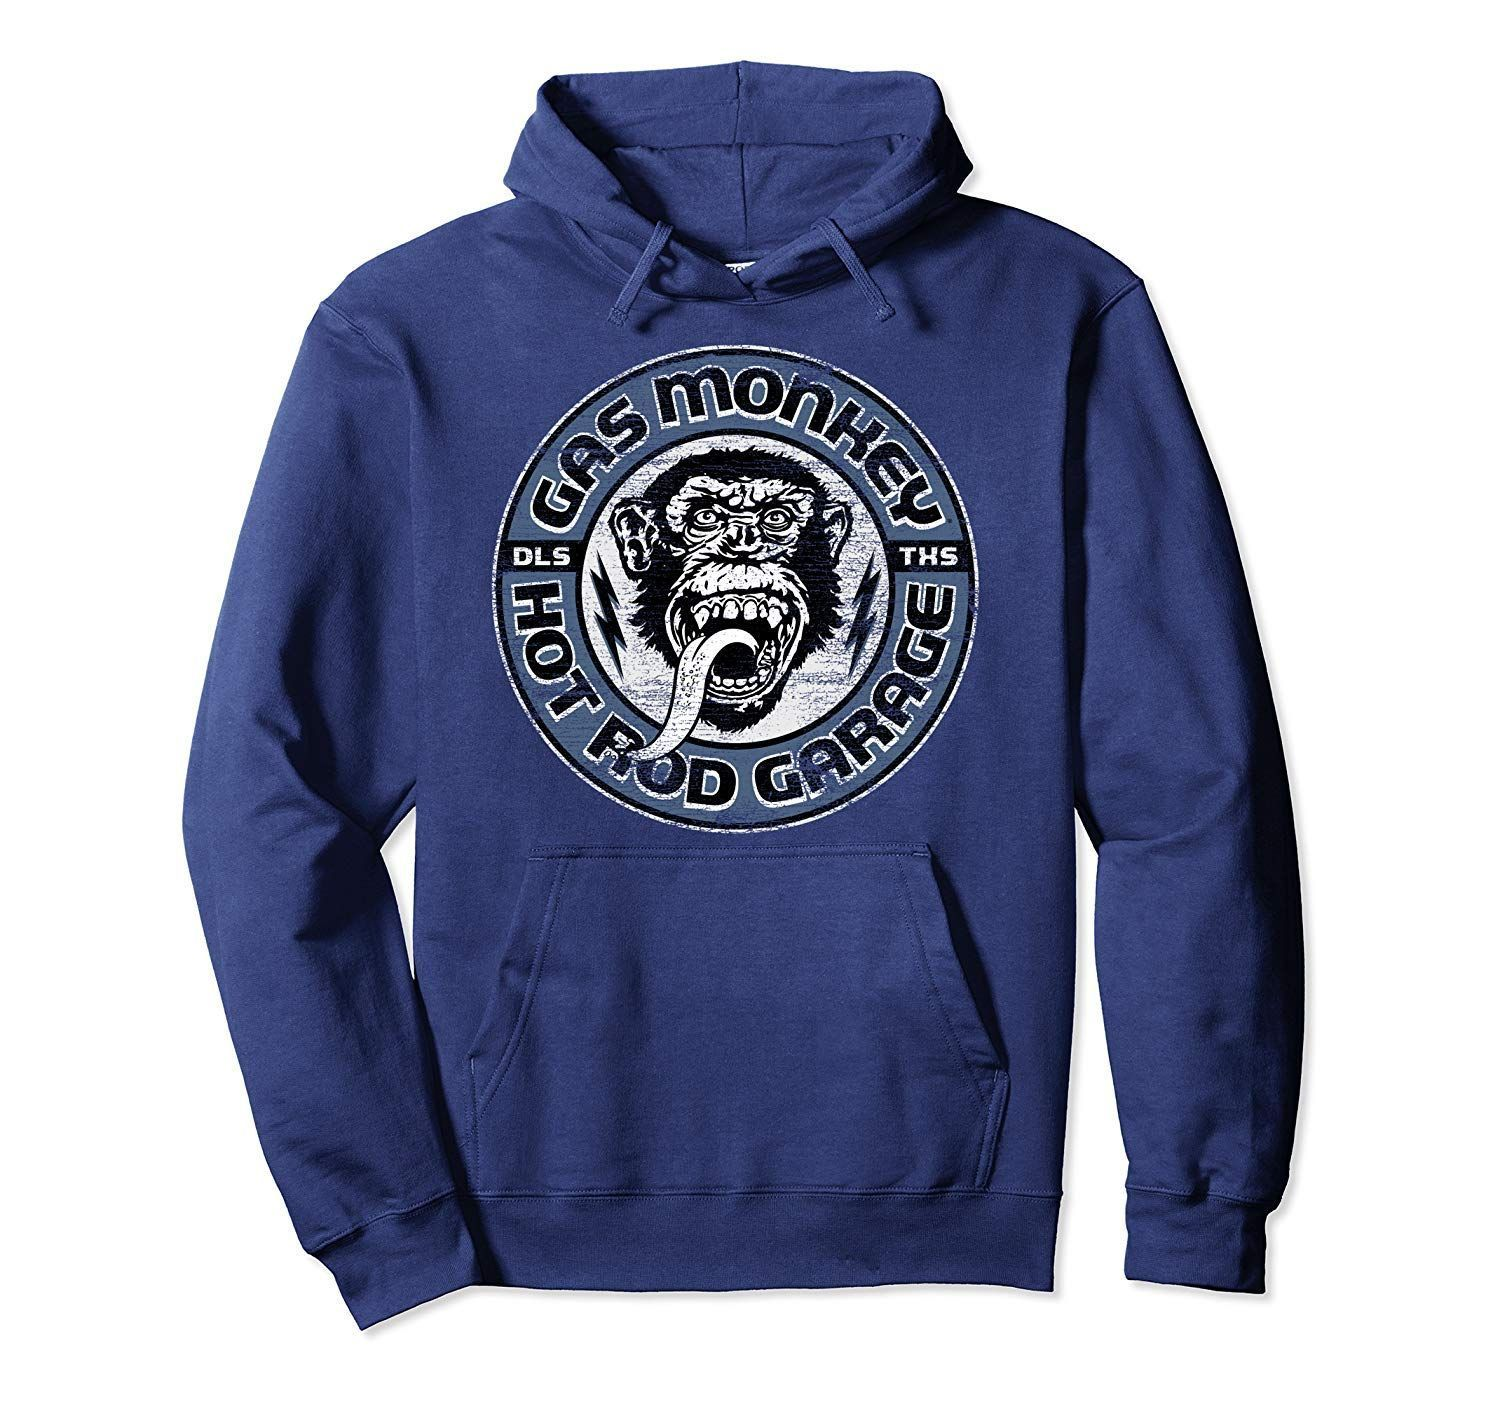 Gas Monkey Garage Distressed Blue Circle Logo Pullover Hoodie #gasmonkeygarage Gas Monkey Garage Distressed Blue Circle Logo Pullover Hoodie #gasmonkeygarage Gas Monkey Garage Distressed Blue Circle Logo Pullover Hoodie #gasmonkeygarage Gas Monkey Garage Distressed Blue Circle Logo Pullover Hoodie #gasmonkeygarage